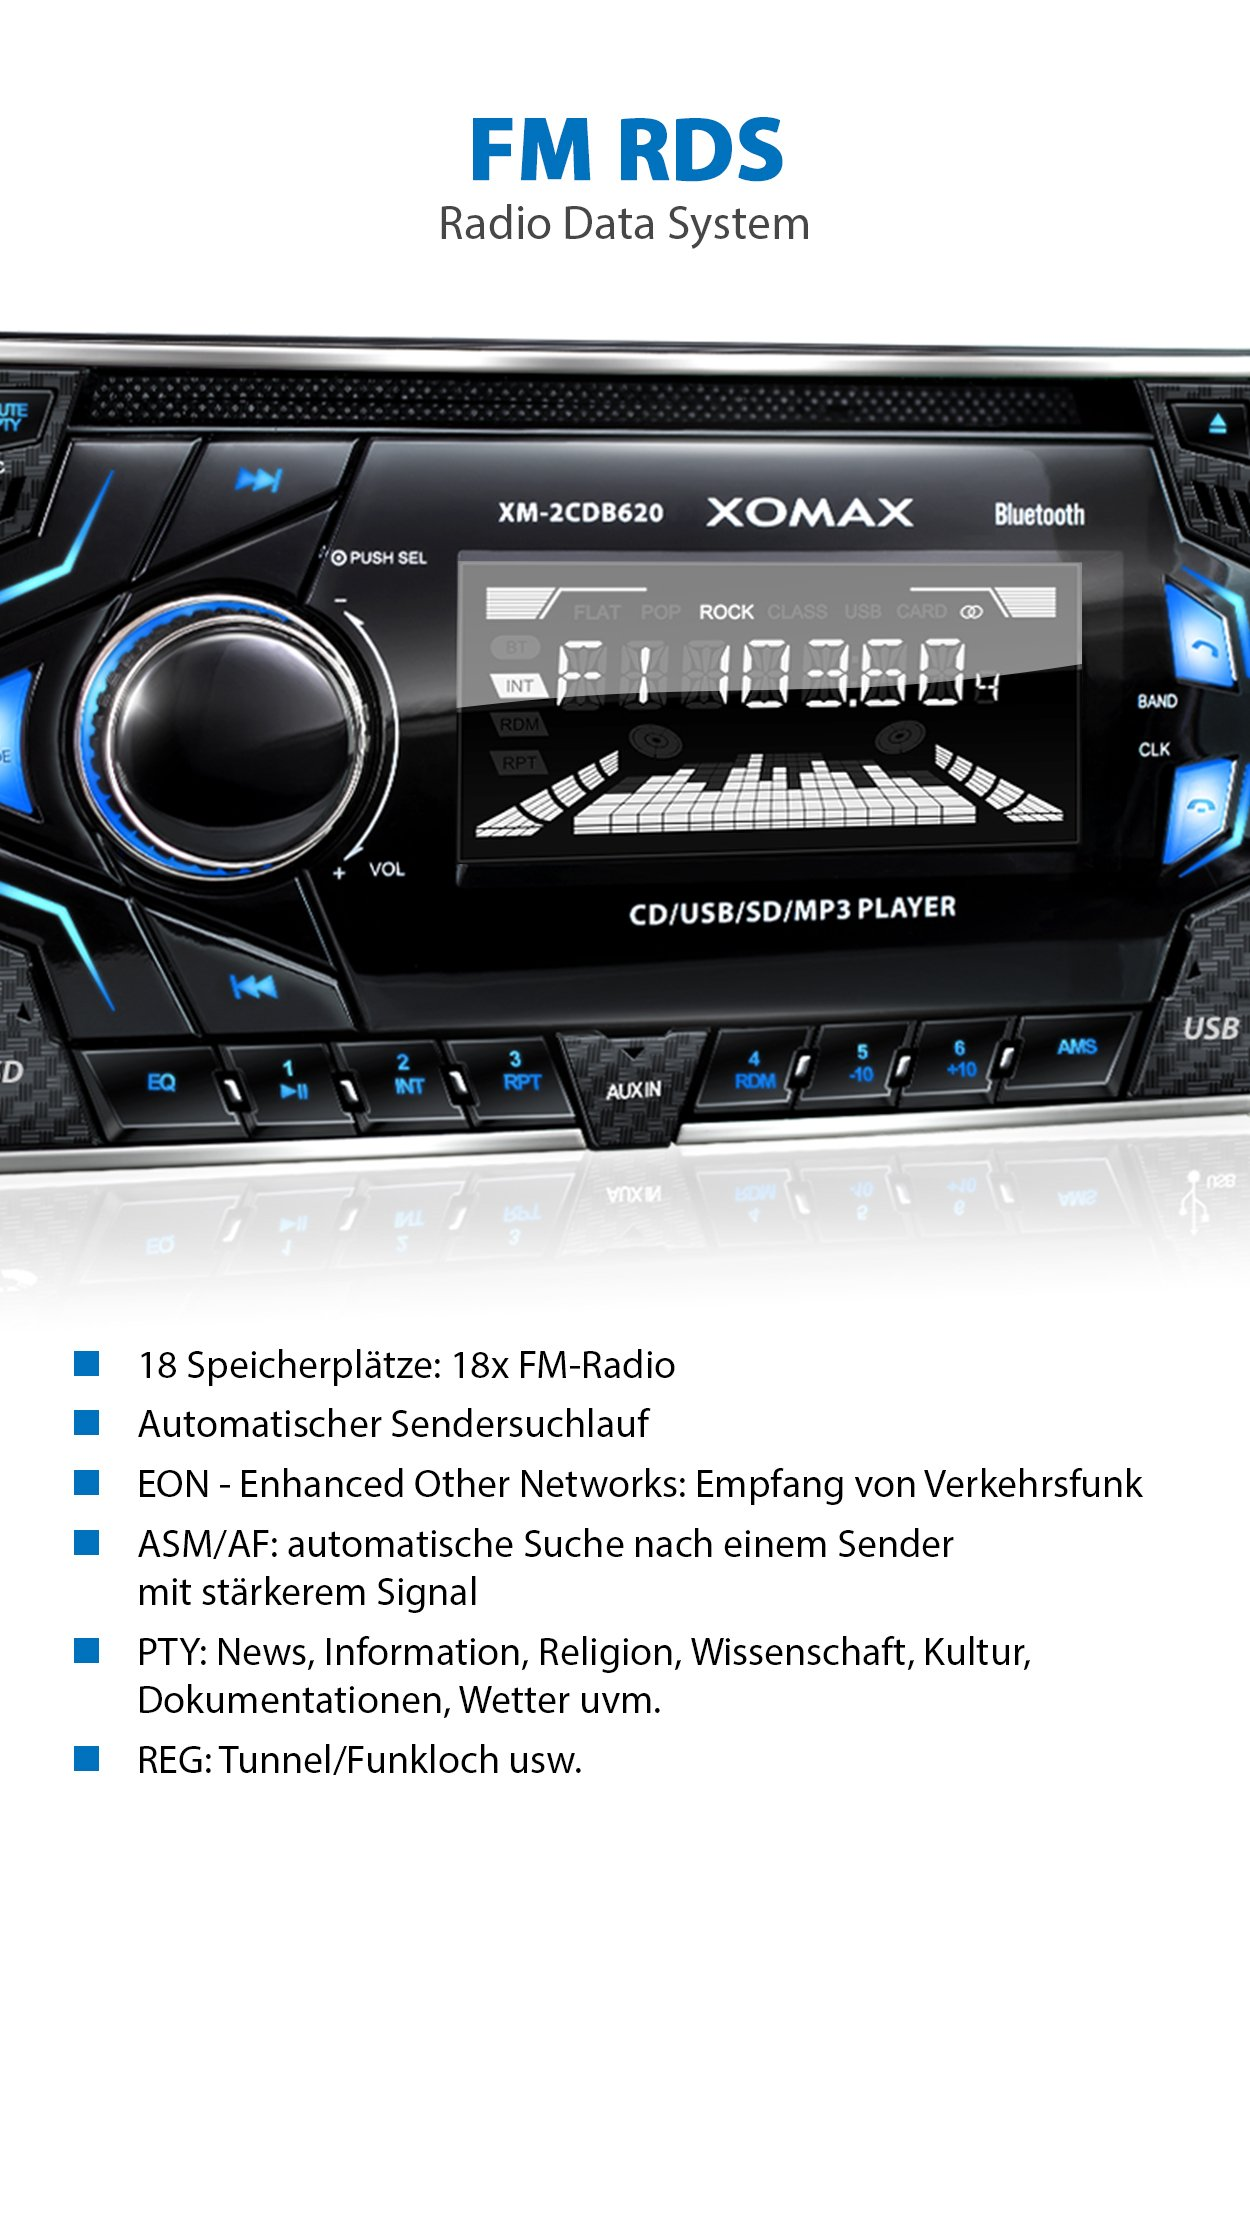 Xo Vision Xd103 Fm Radio And Stereo Receiver With Usb Port Sd Card Slot